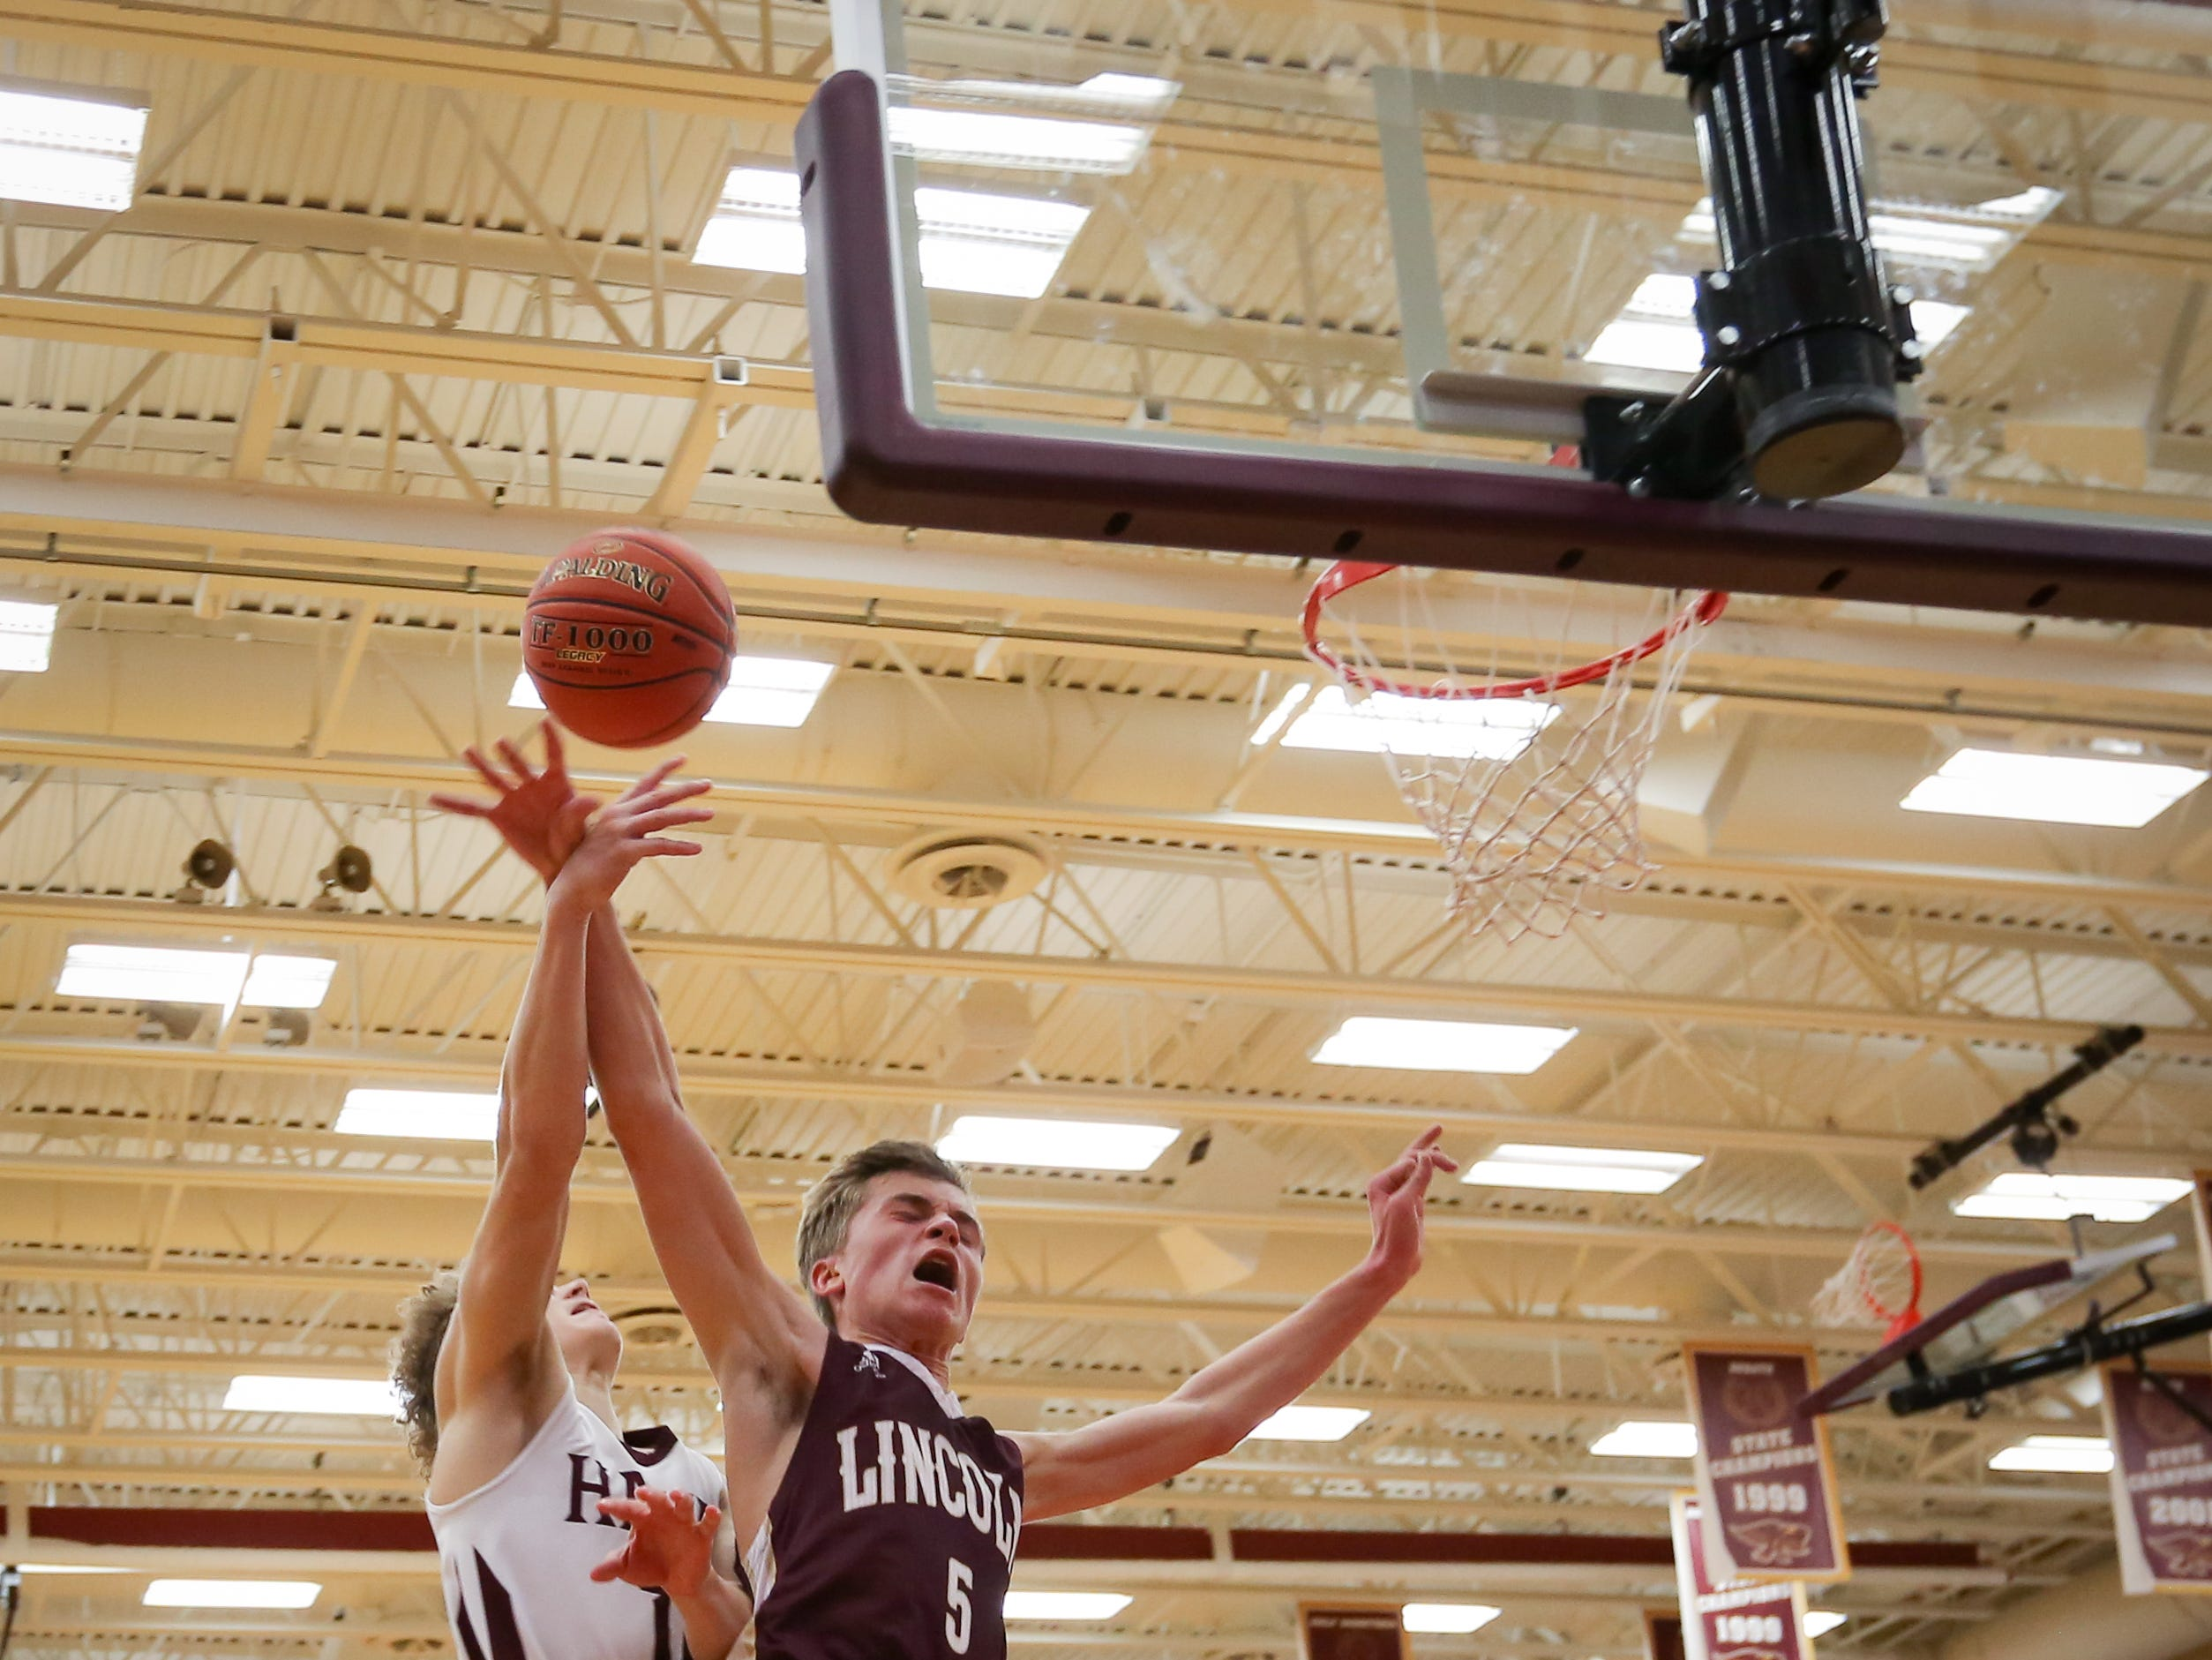 Lincoln Ben Badger gets his shot blocked by Ankeny junior Jordan Kumm during a boys high school basketball game between the Lincoln Railsplitters and the Ankeny Hawks at Ankeny High School on Dec. 4, 2018 in Ankeny, Iowa.